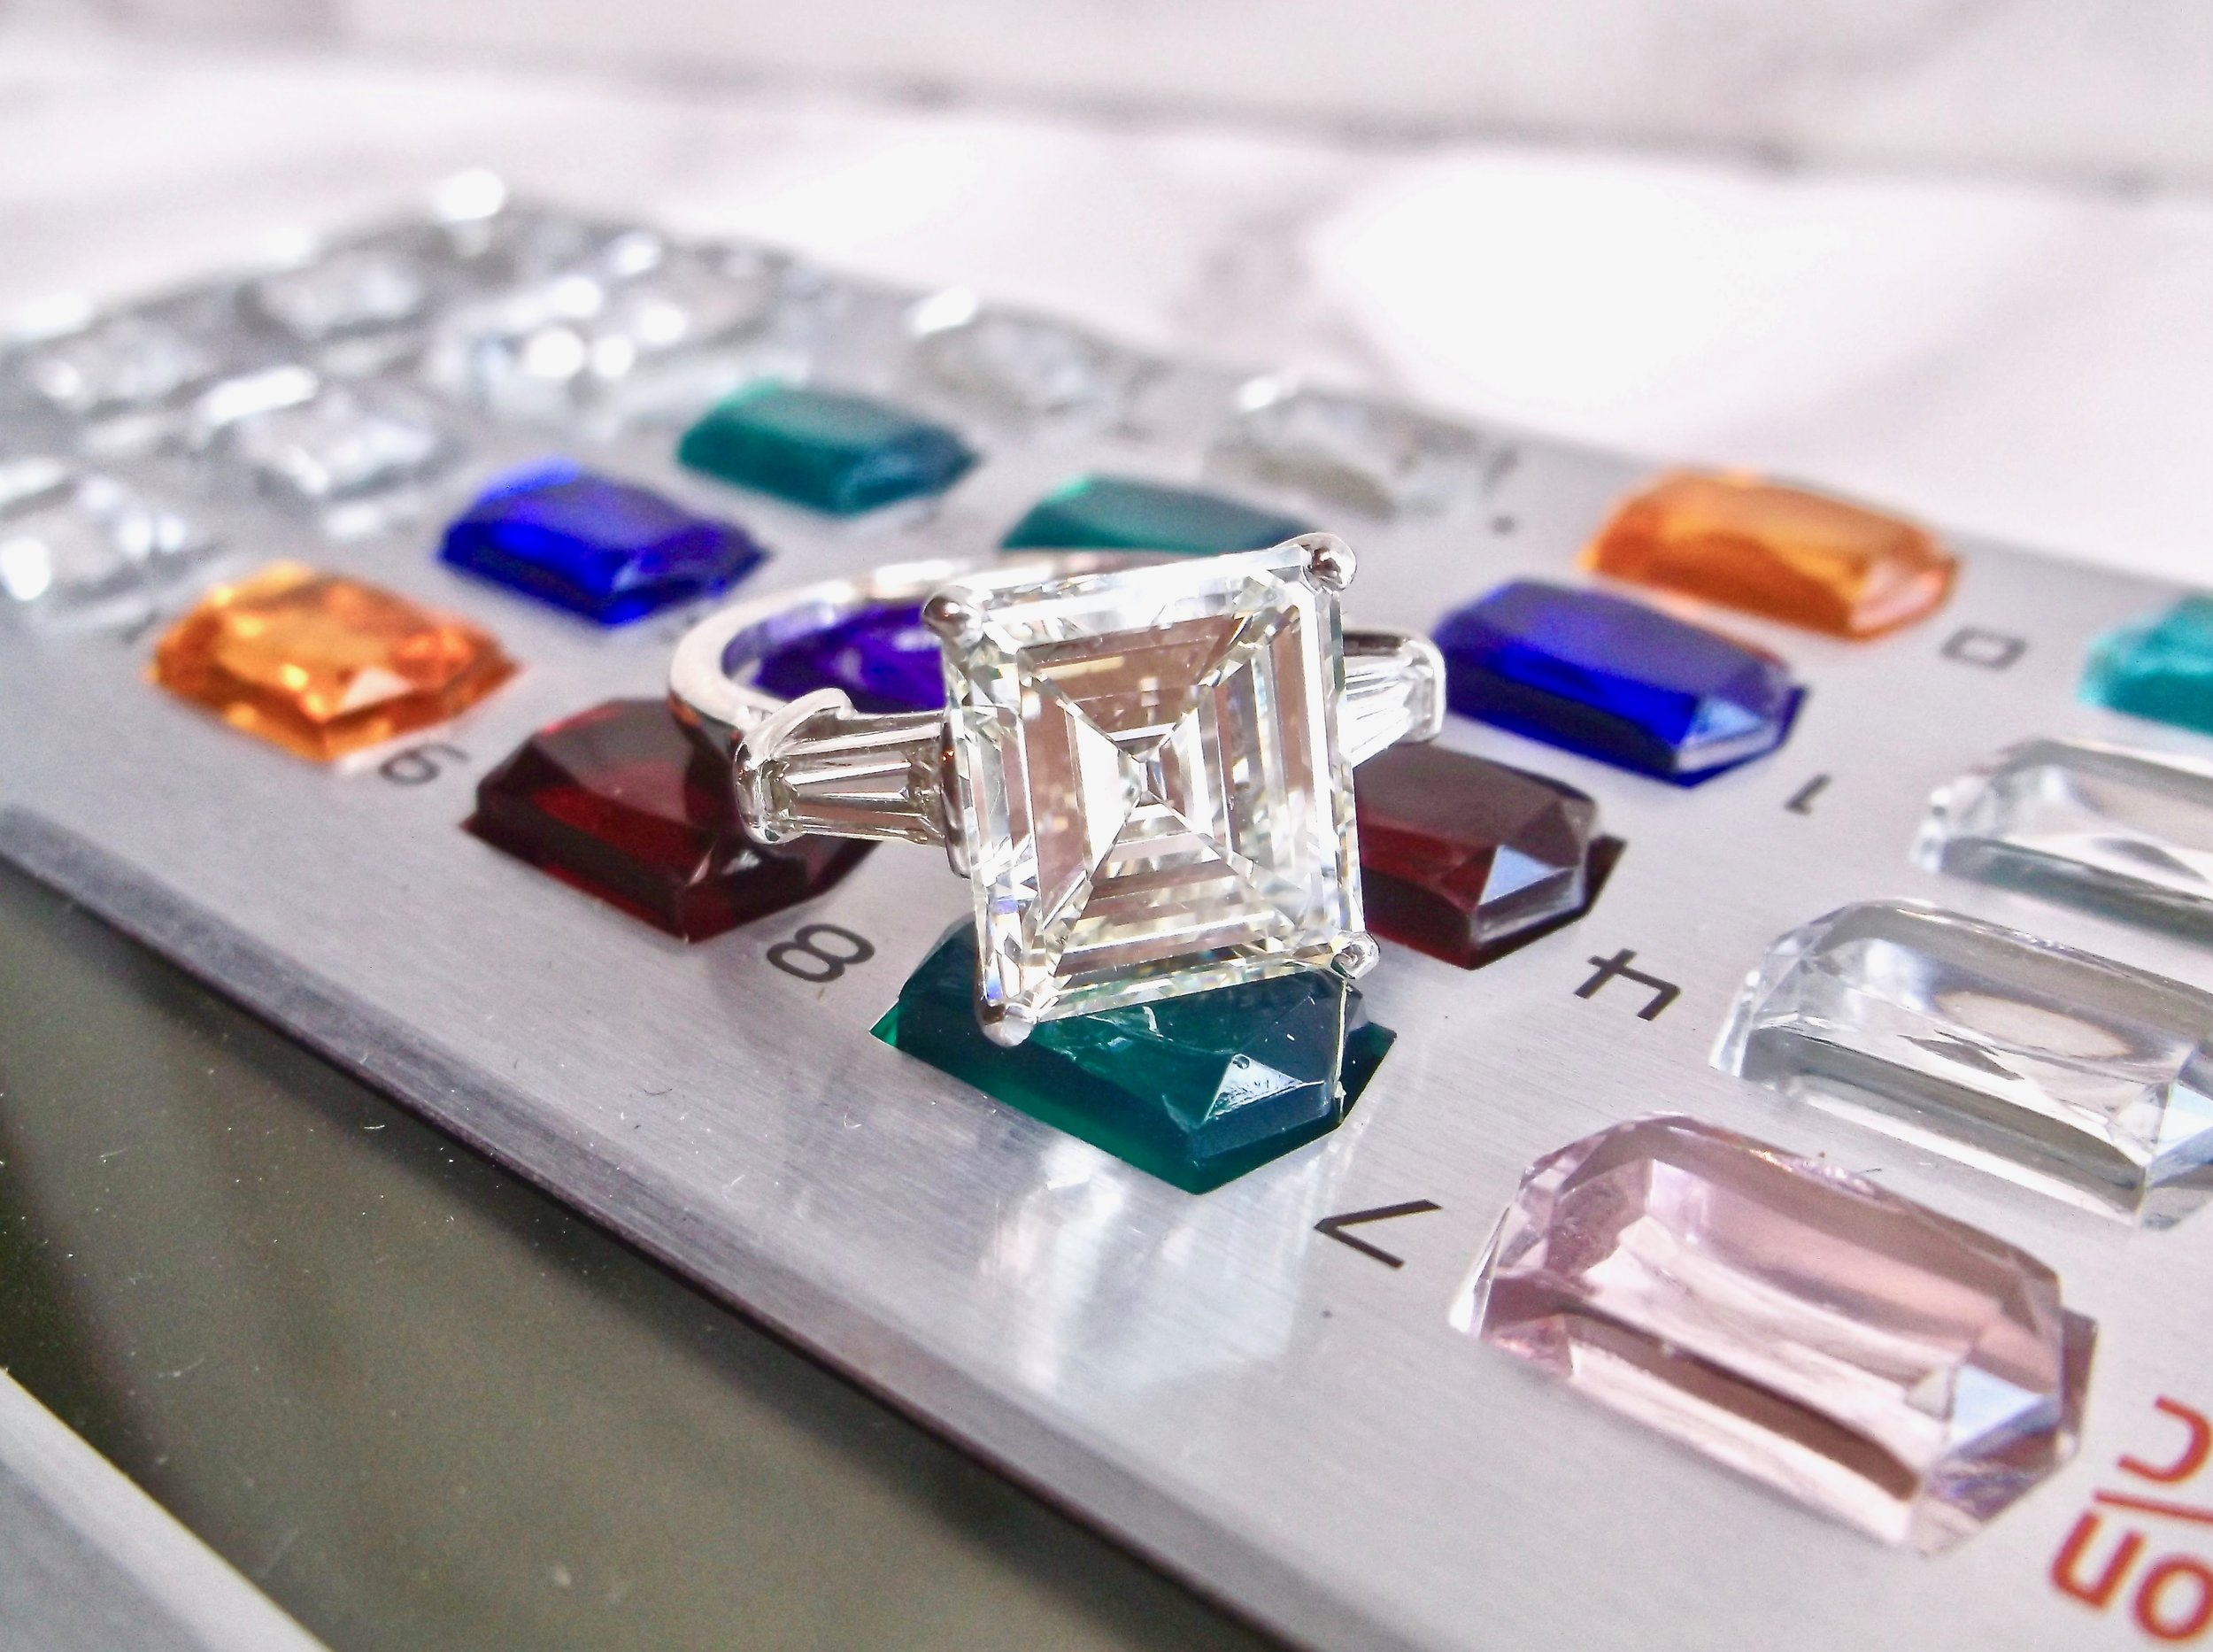 We're crunching some numbers trying to figure out how all of the Walton's ladies can share this bad boy! A fabulous 5.20 carat asscher cut diamond set in a platinum and baguette cut diamond mounting.  Shop this stunner  HERE